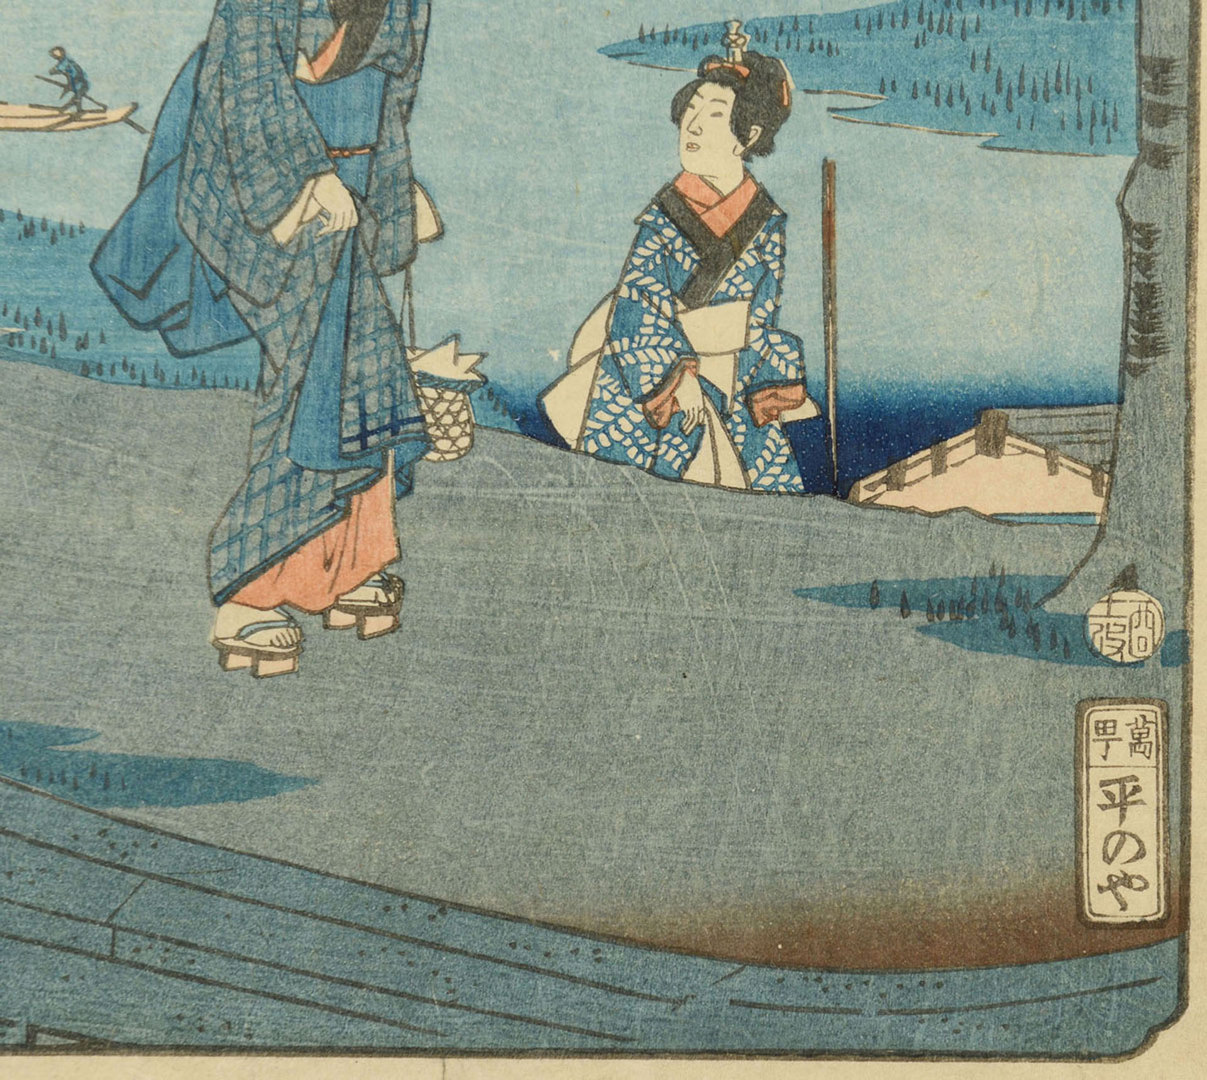 Lot 447: 2 Prints, incl. Japanese Woodblock